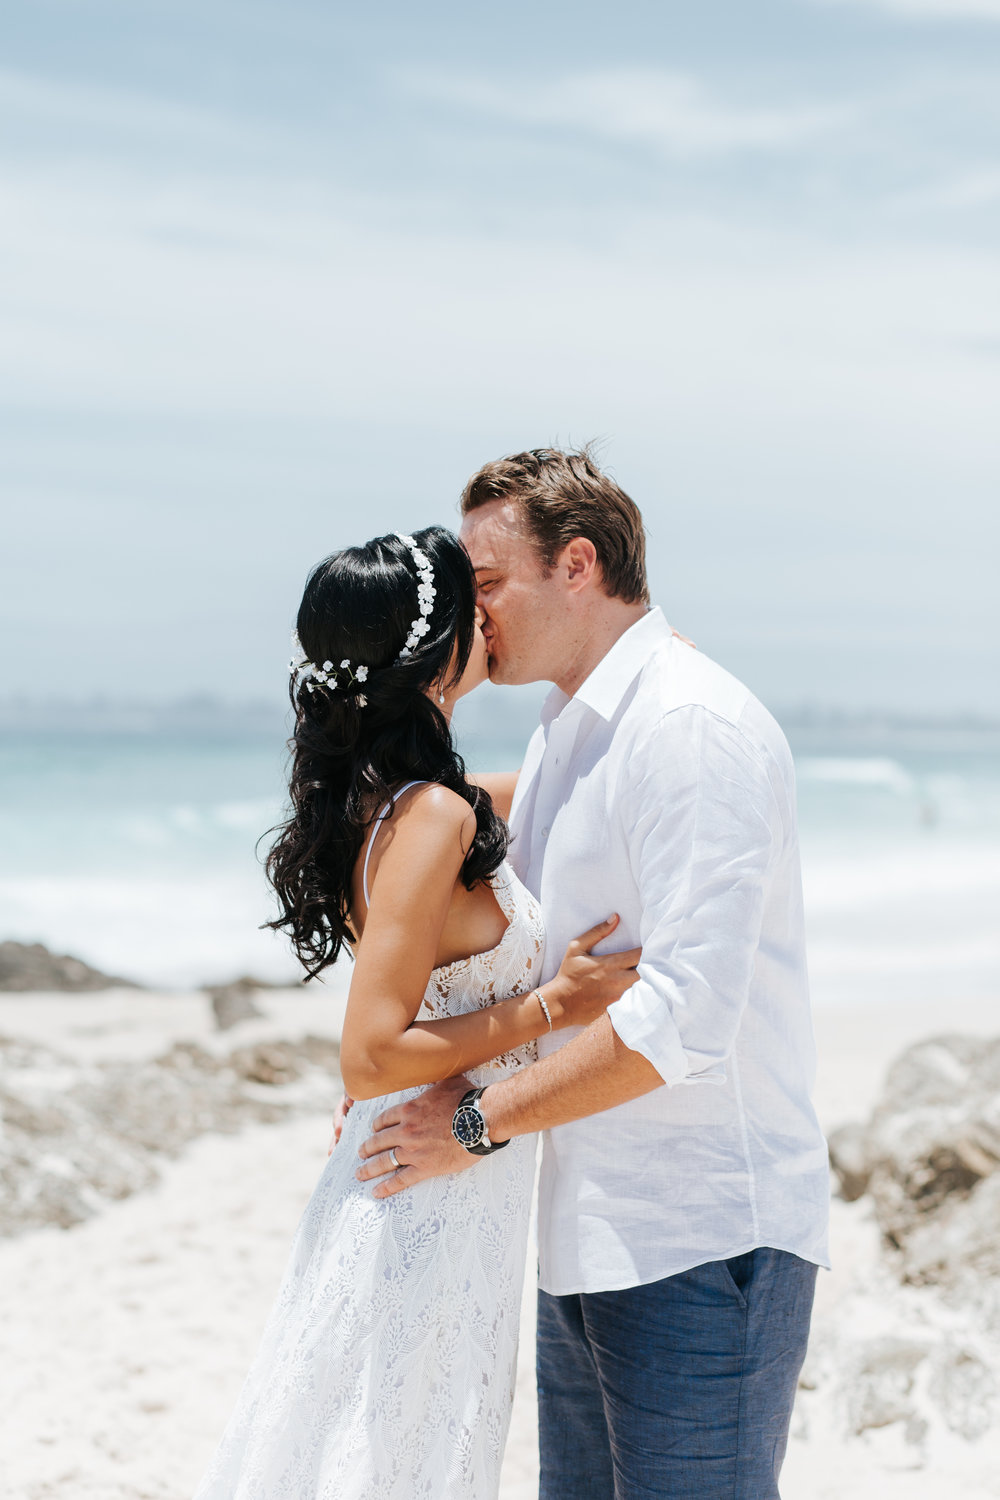 Brisbane family photographer kym renay.walsh.wed 014.jpg